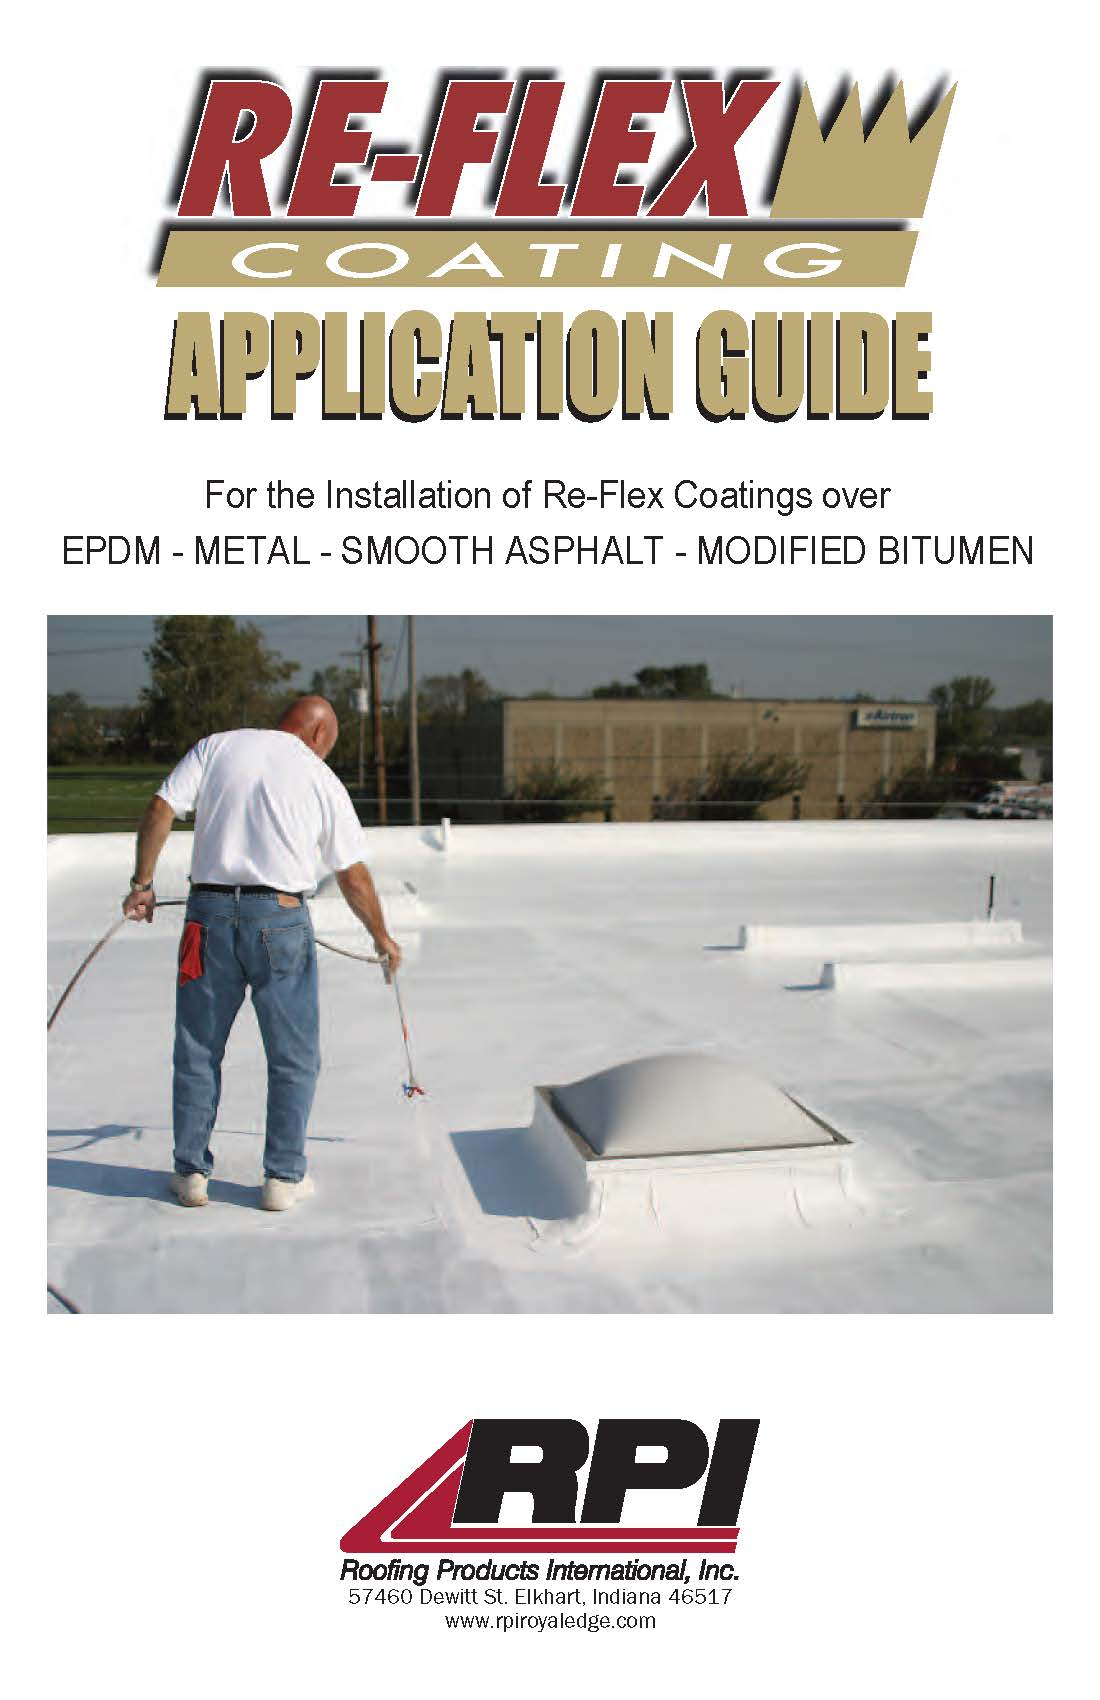 Re Flex Coating Roofing Products International Inc